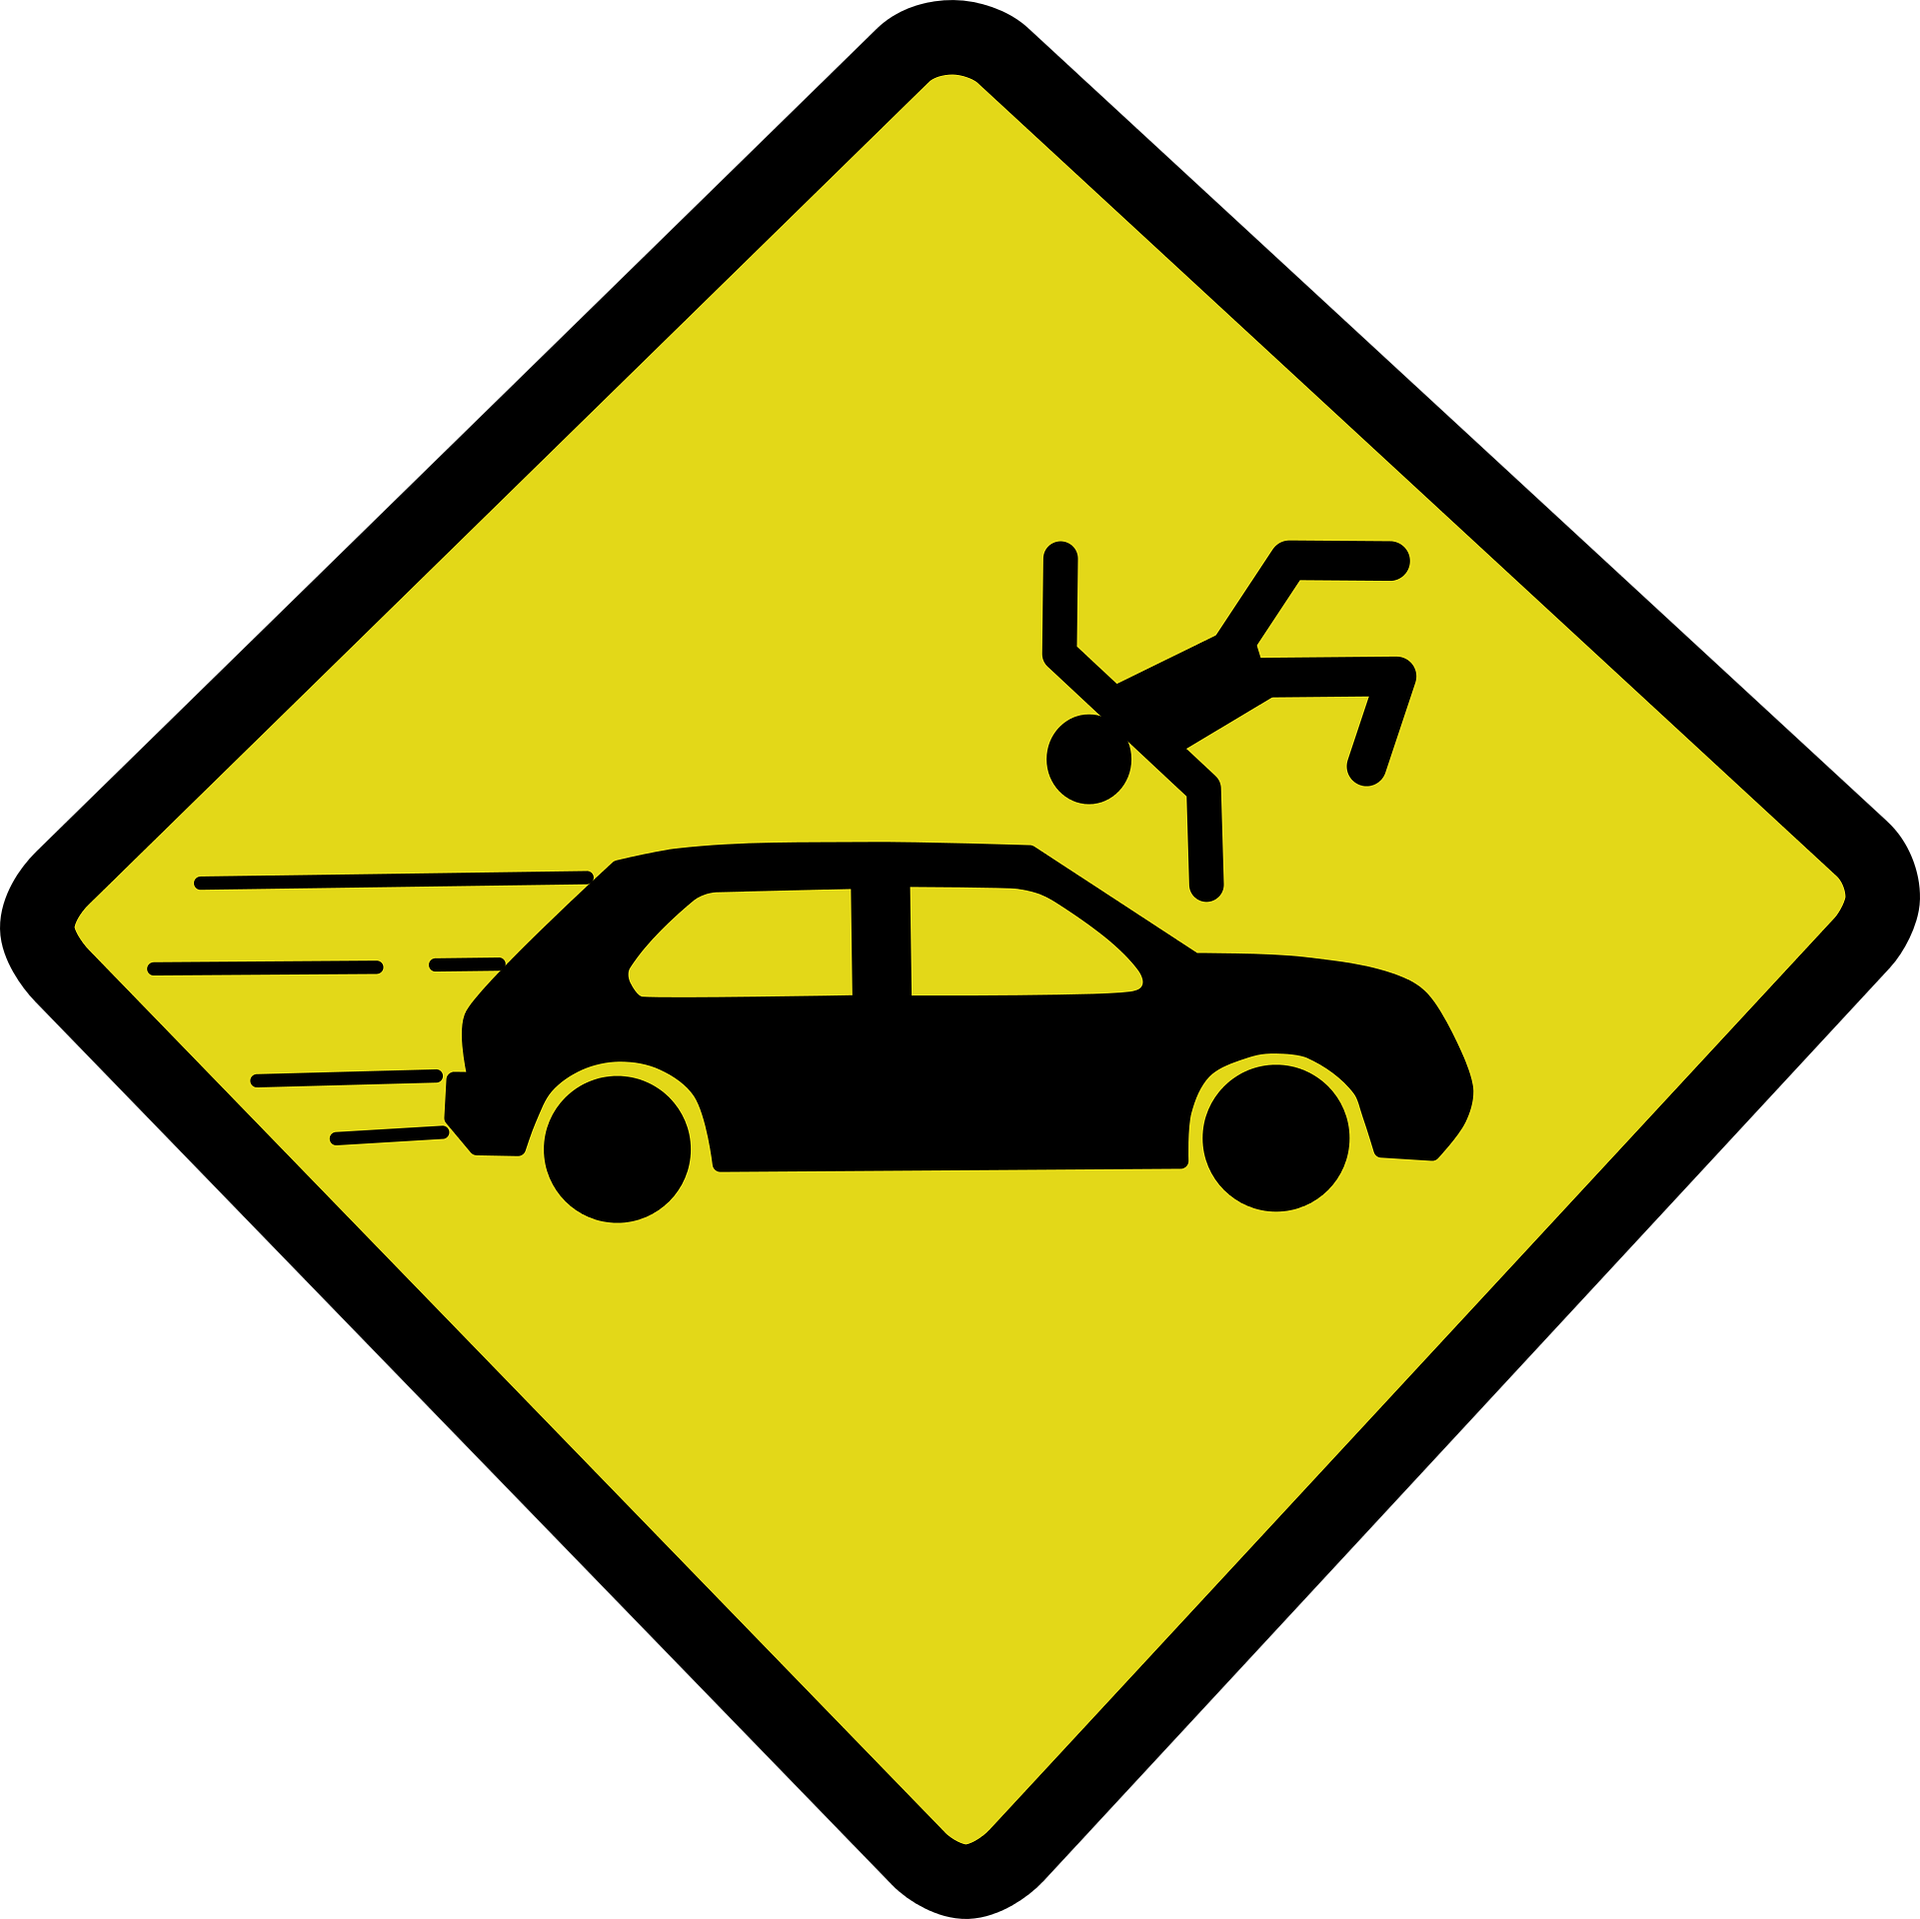 accident-1297355_1920.png